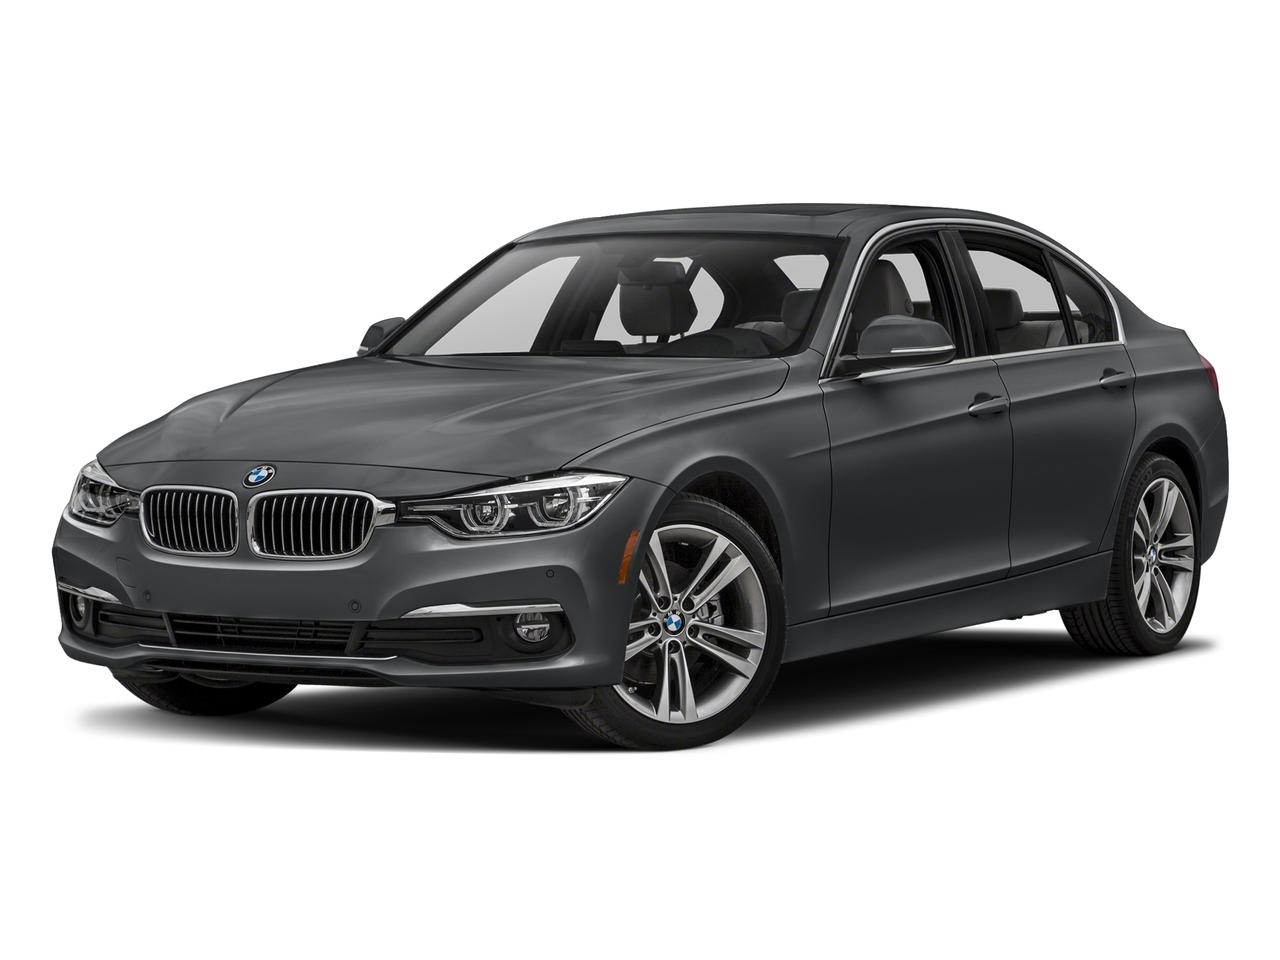 2018 BMW 328d Vehicle Photo in Pleasanton, CA 94588